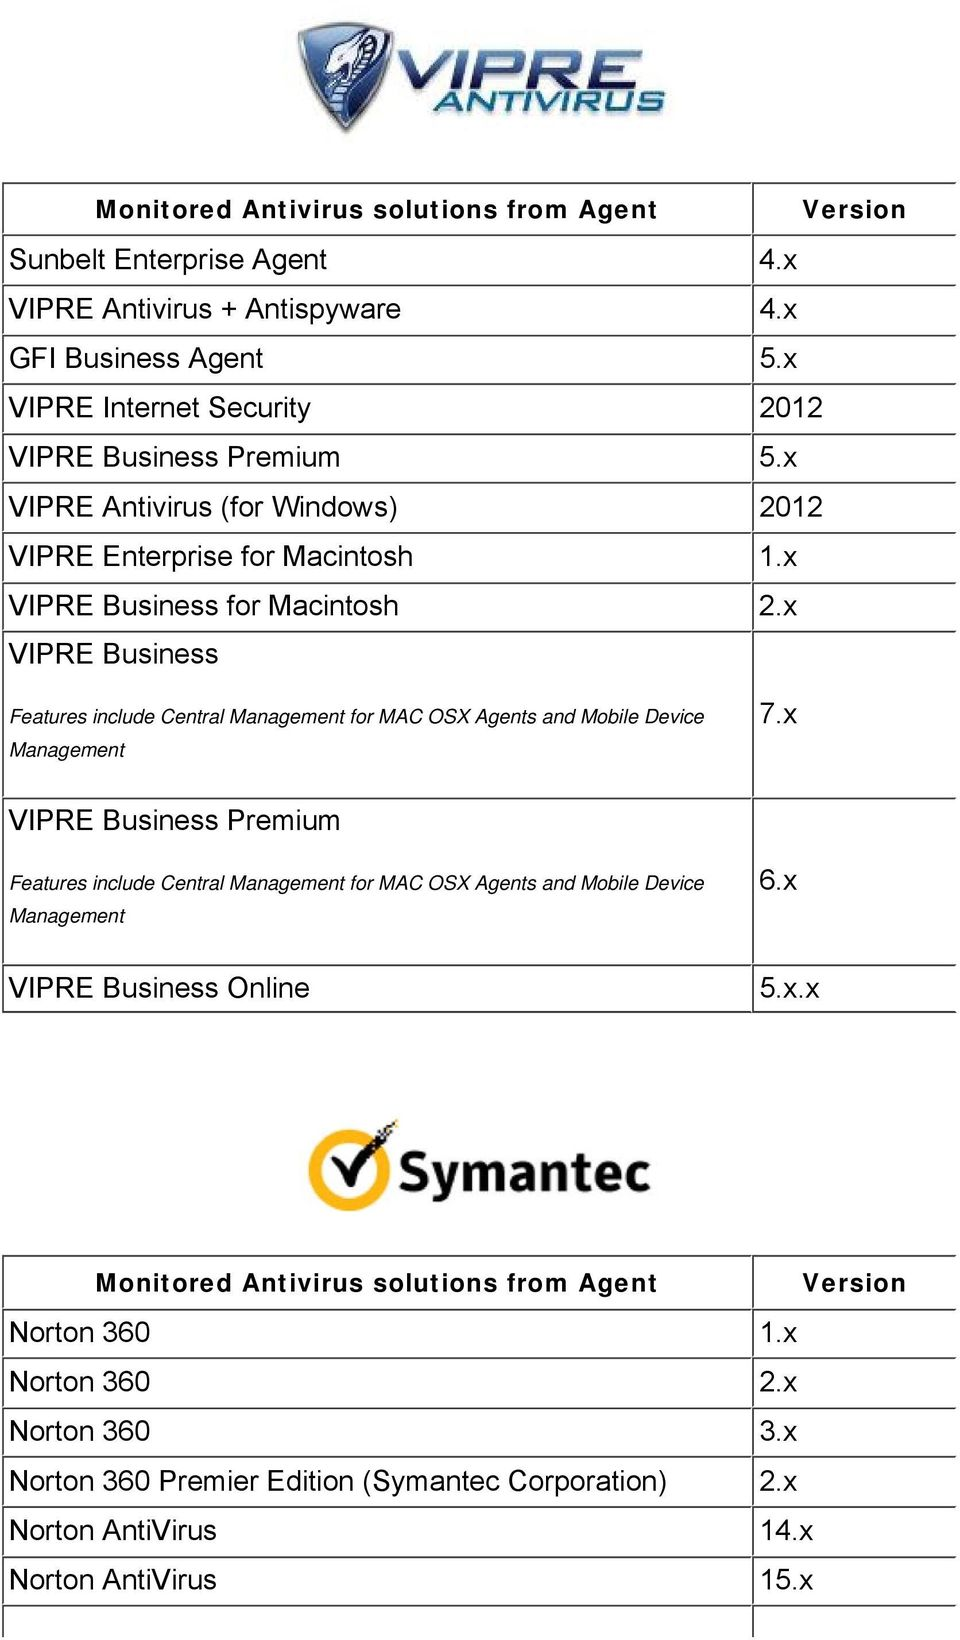 x VIPRE Business Features include Central Management for MAC OSX Agents and Mobile Device Management 7.